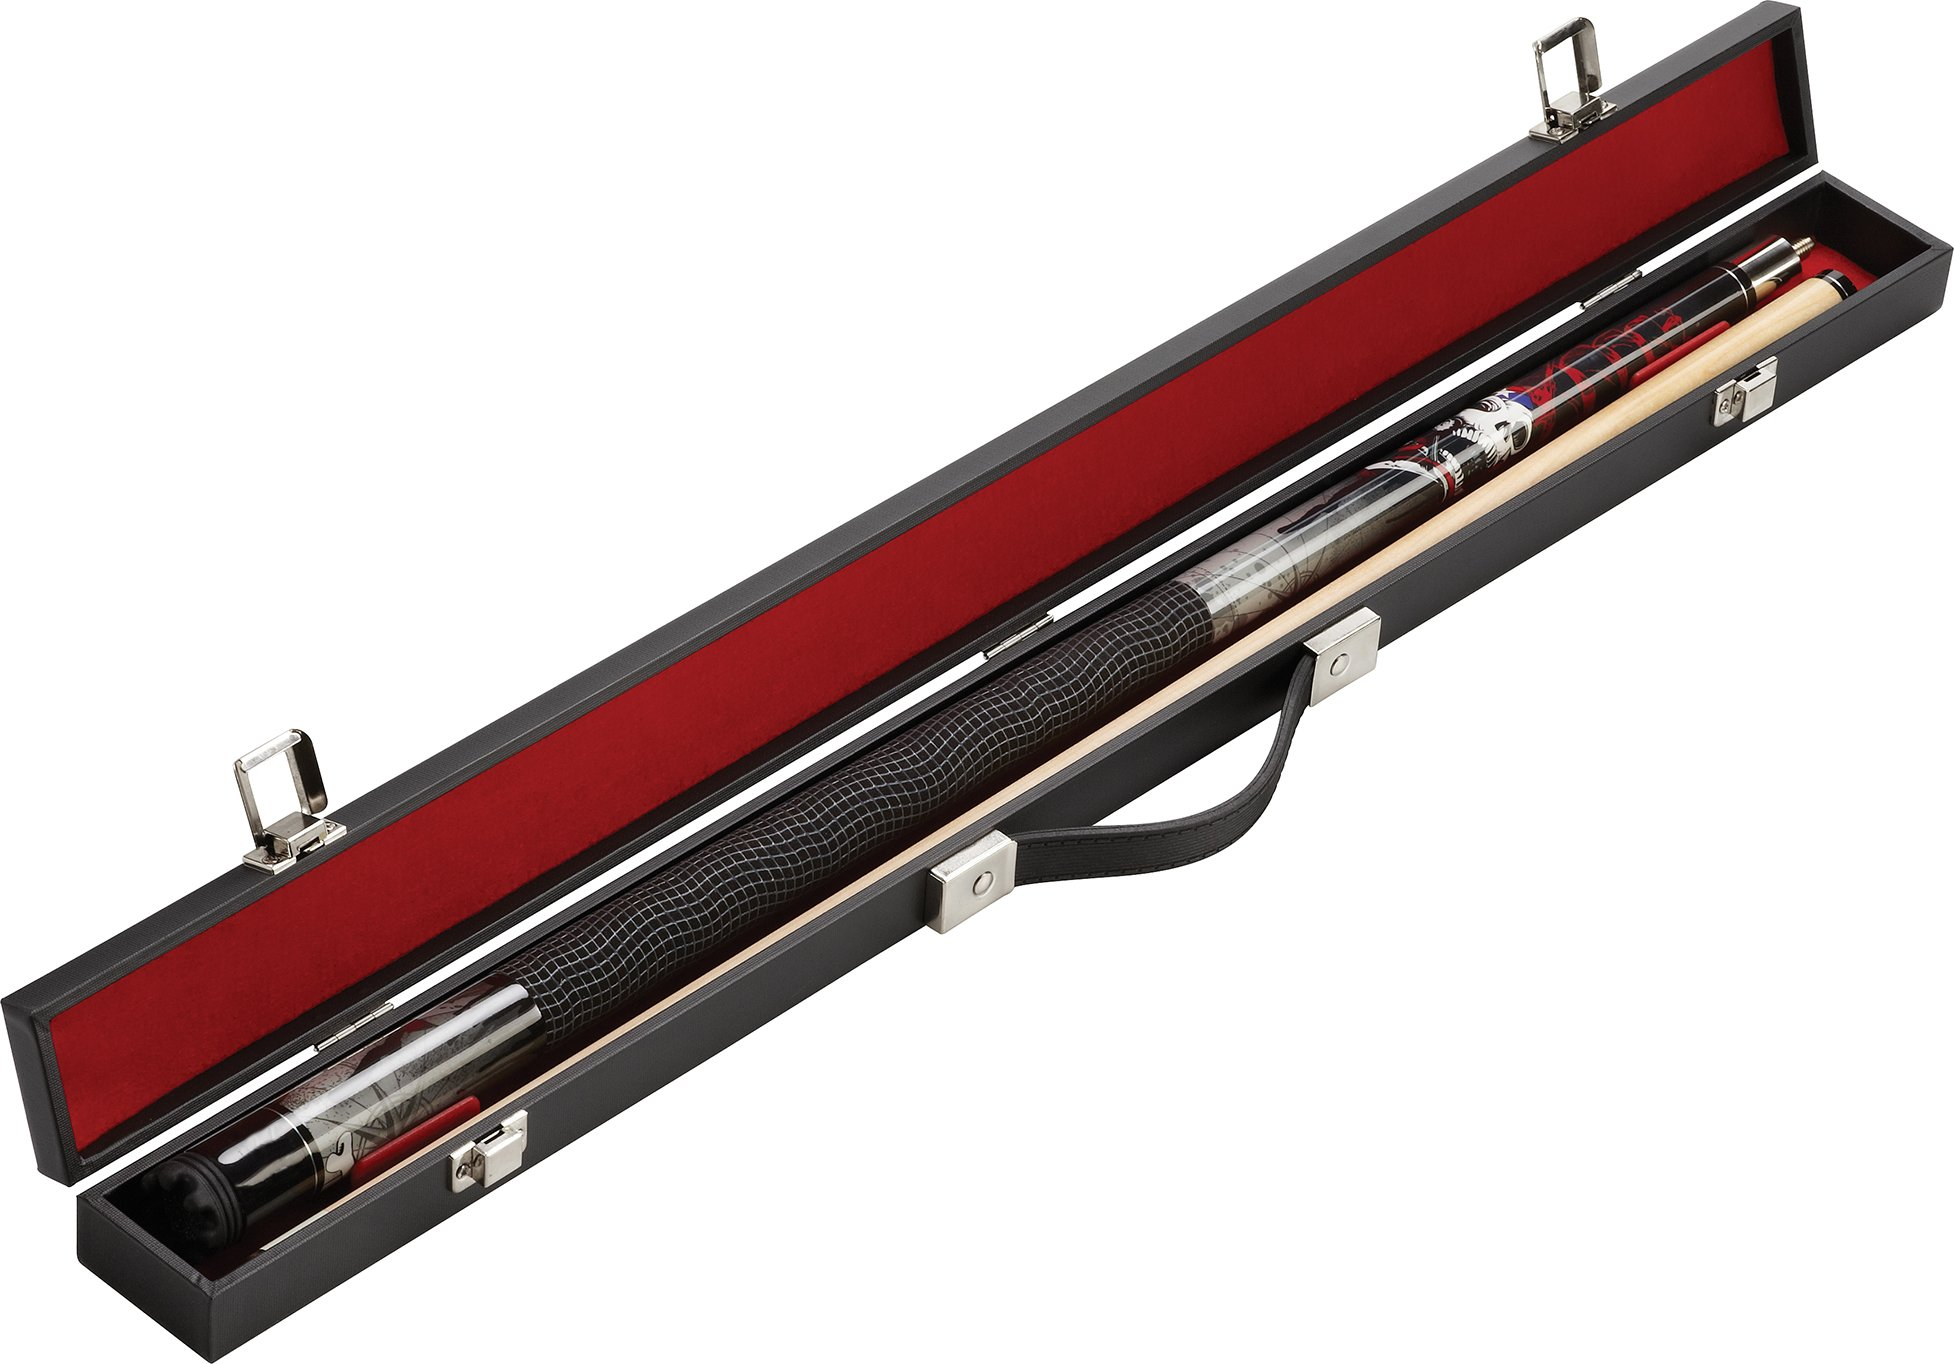 Fat Cat Q-Vault Billiard/Pool Cue Hard Case, Holds 1 Complete 2-Piece Cue (1 Butt/1 Shaft)